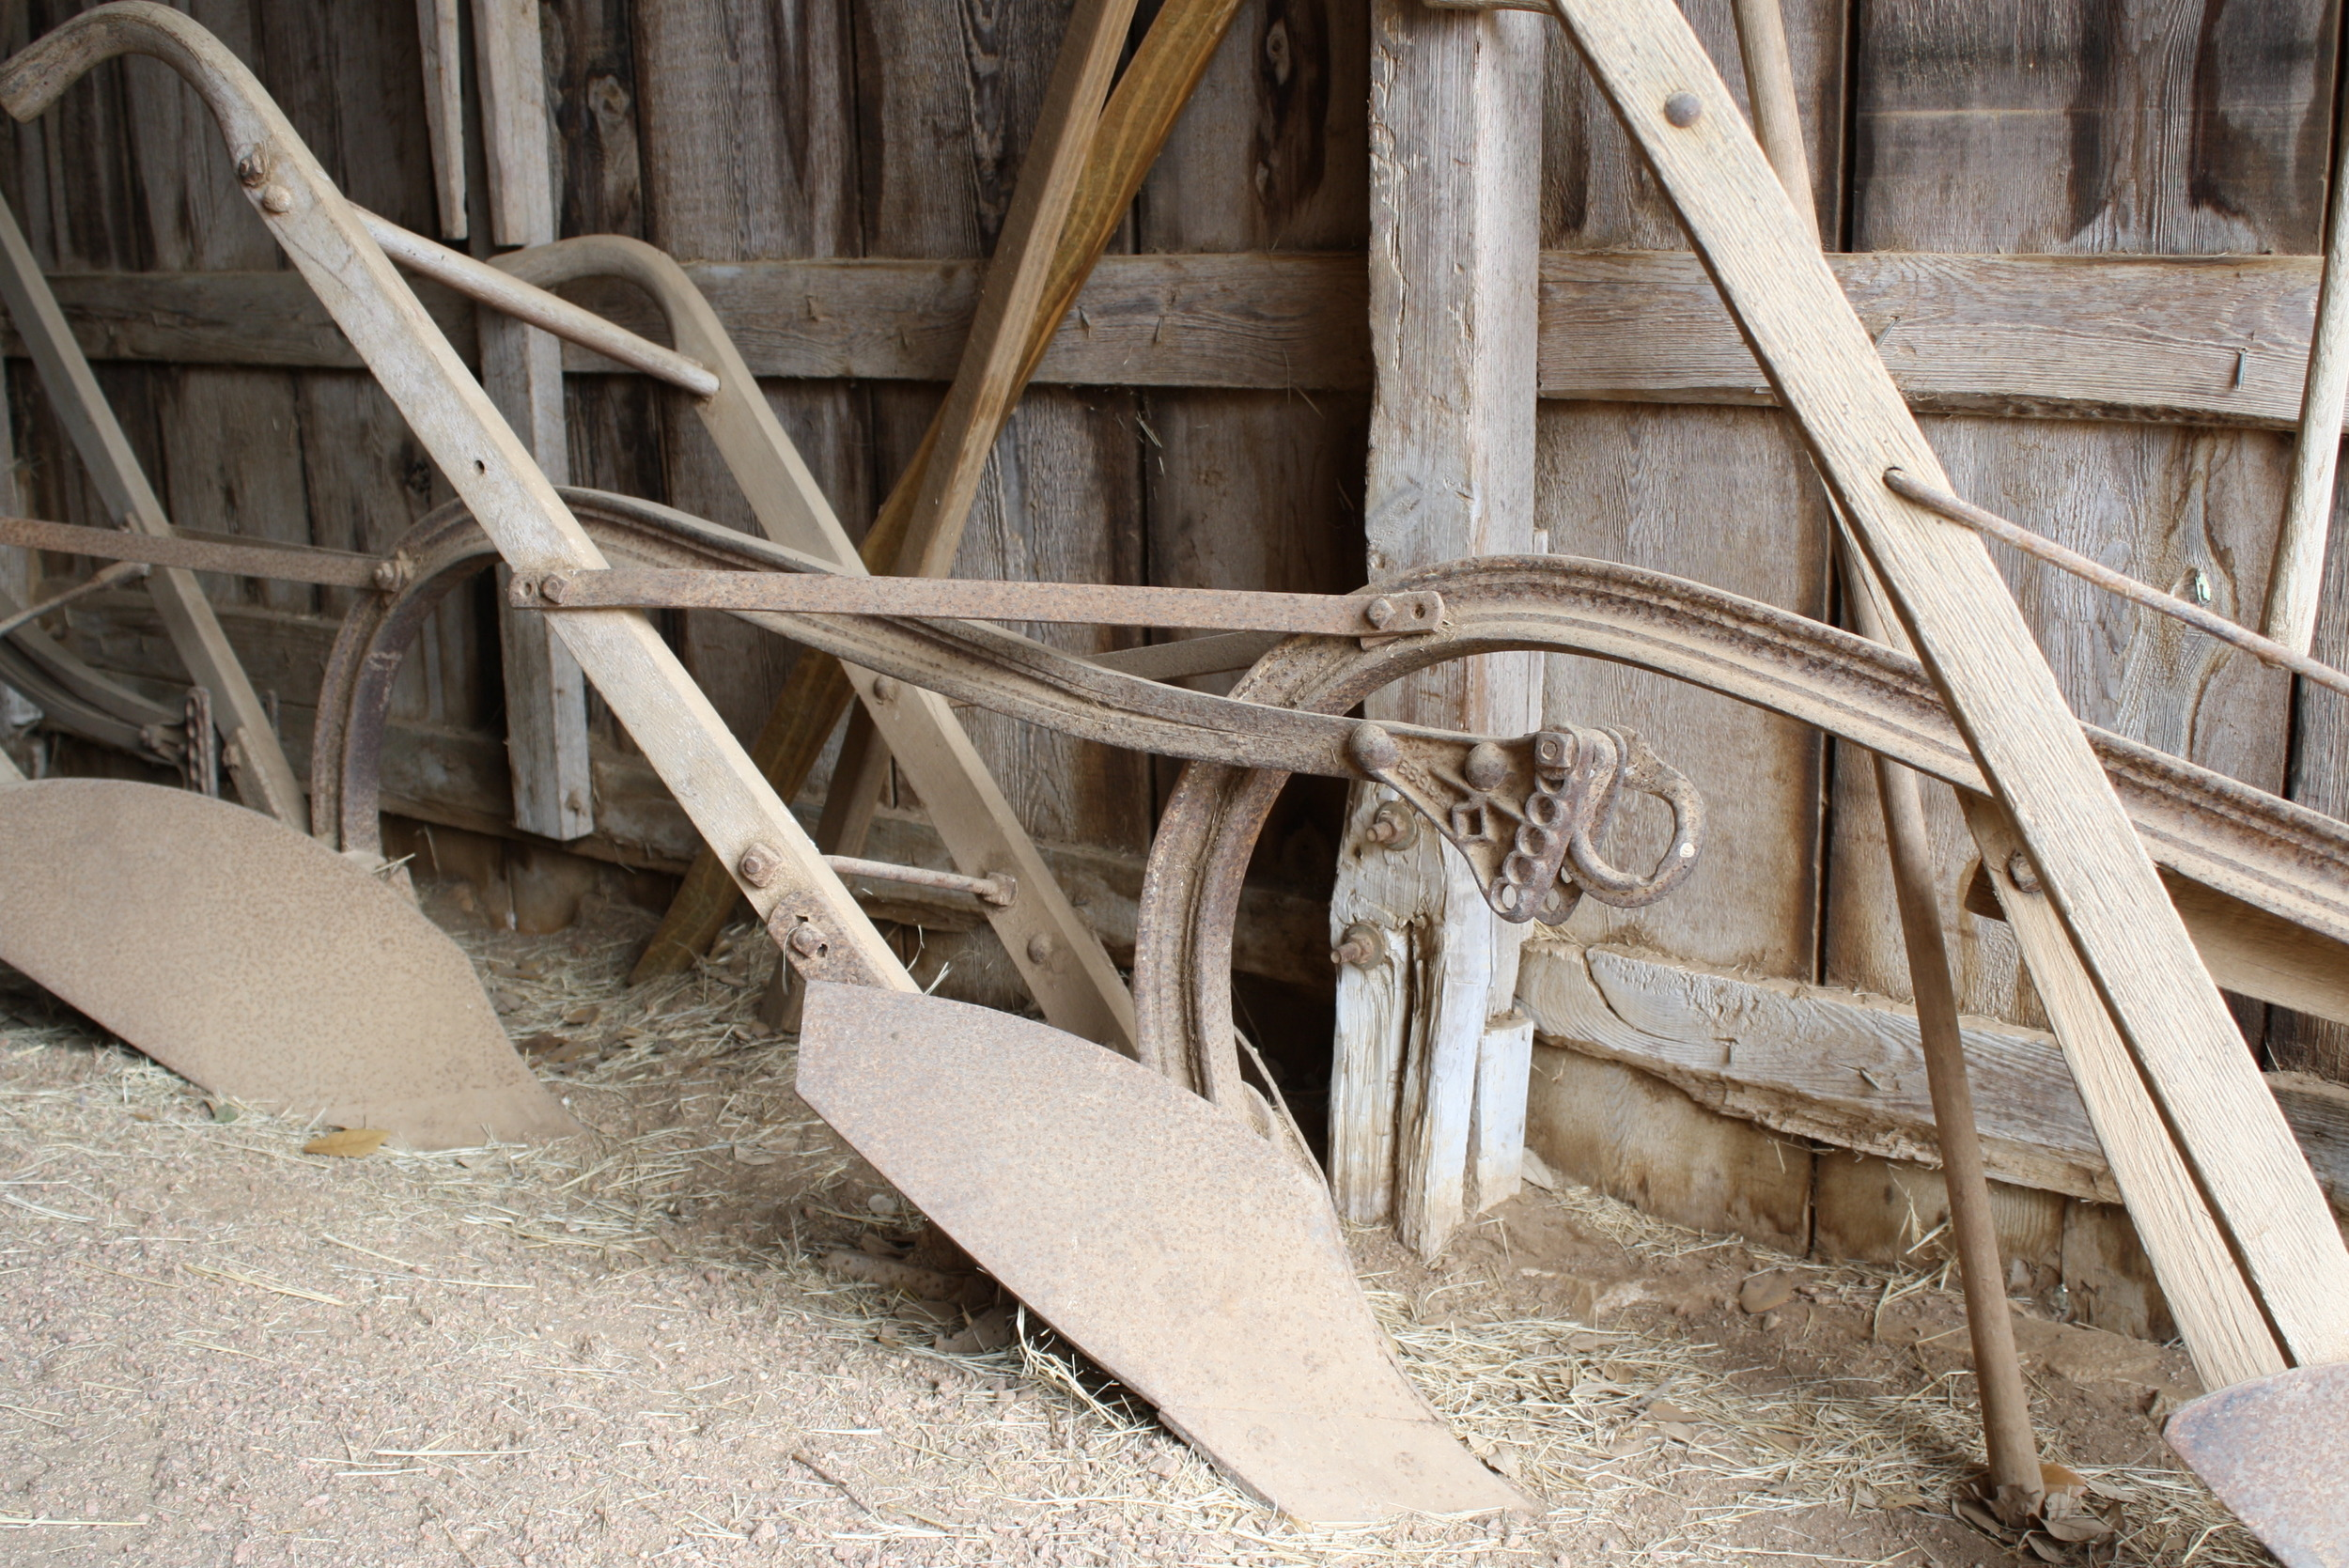 Plows in the barn